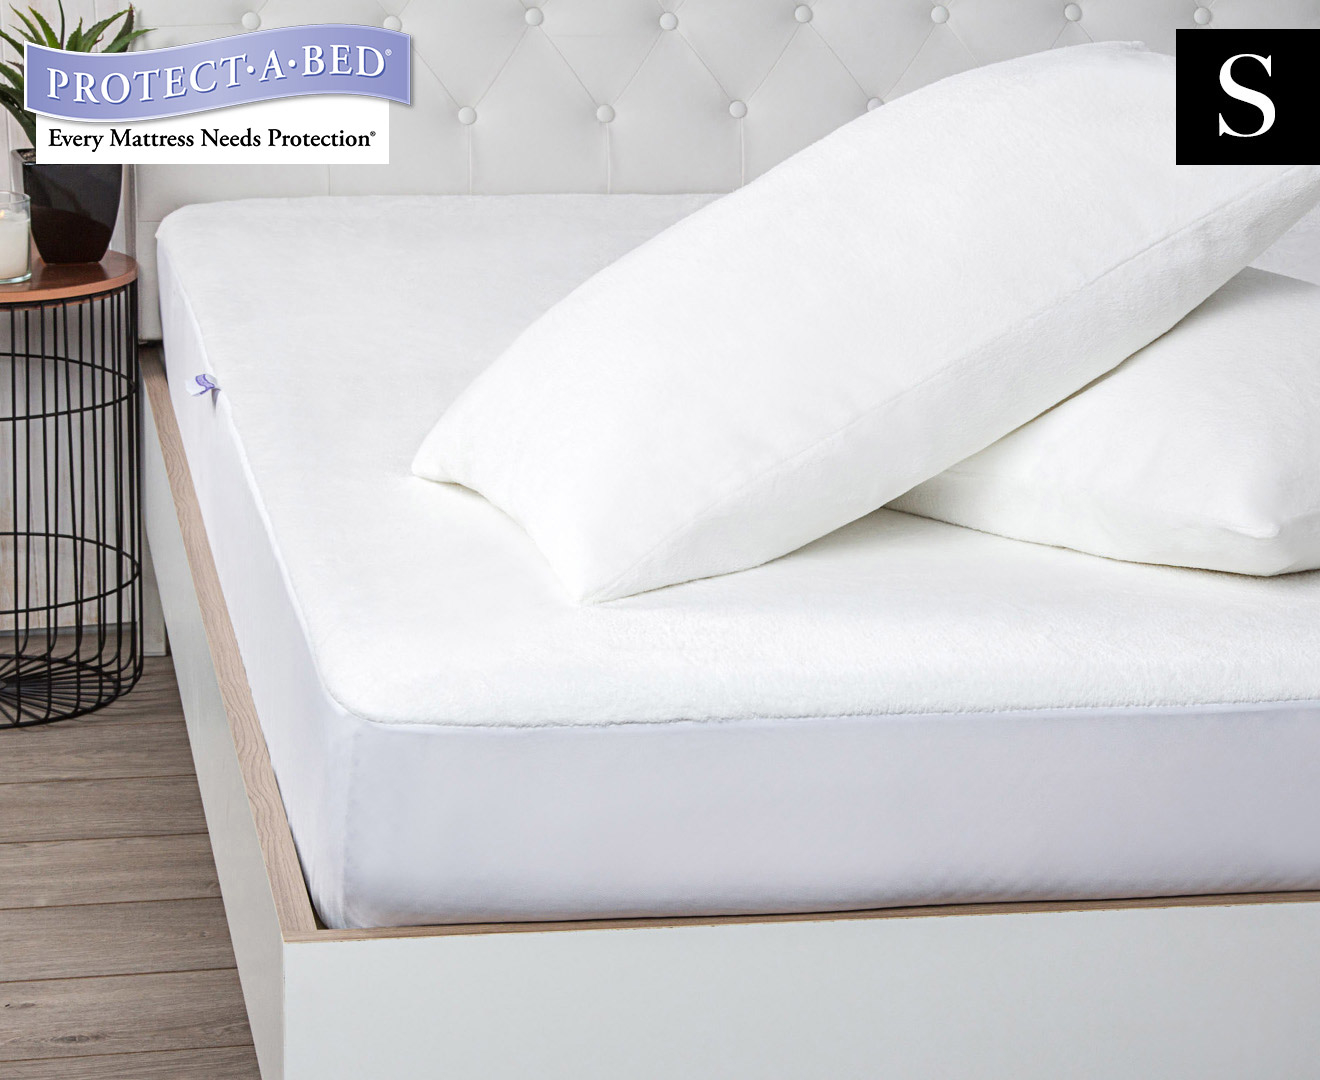 Scoopon Shopping Protect A Bed Plush Single Mattress